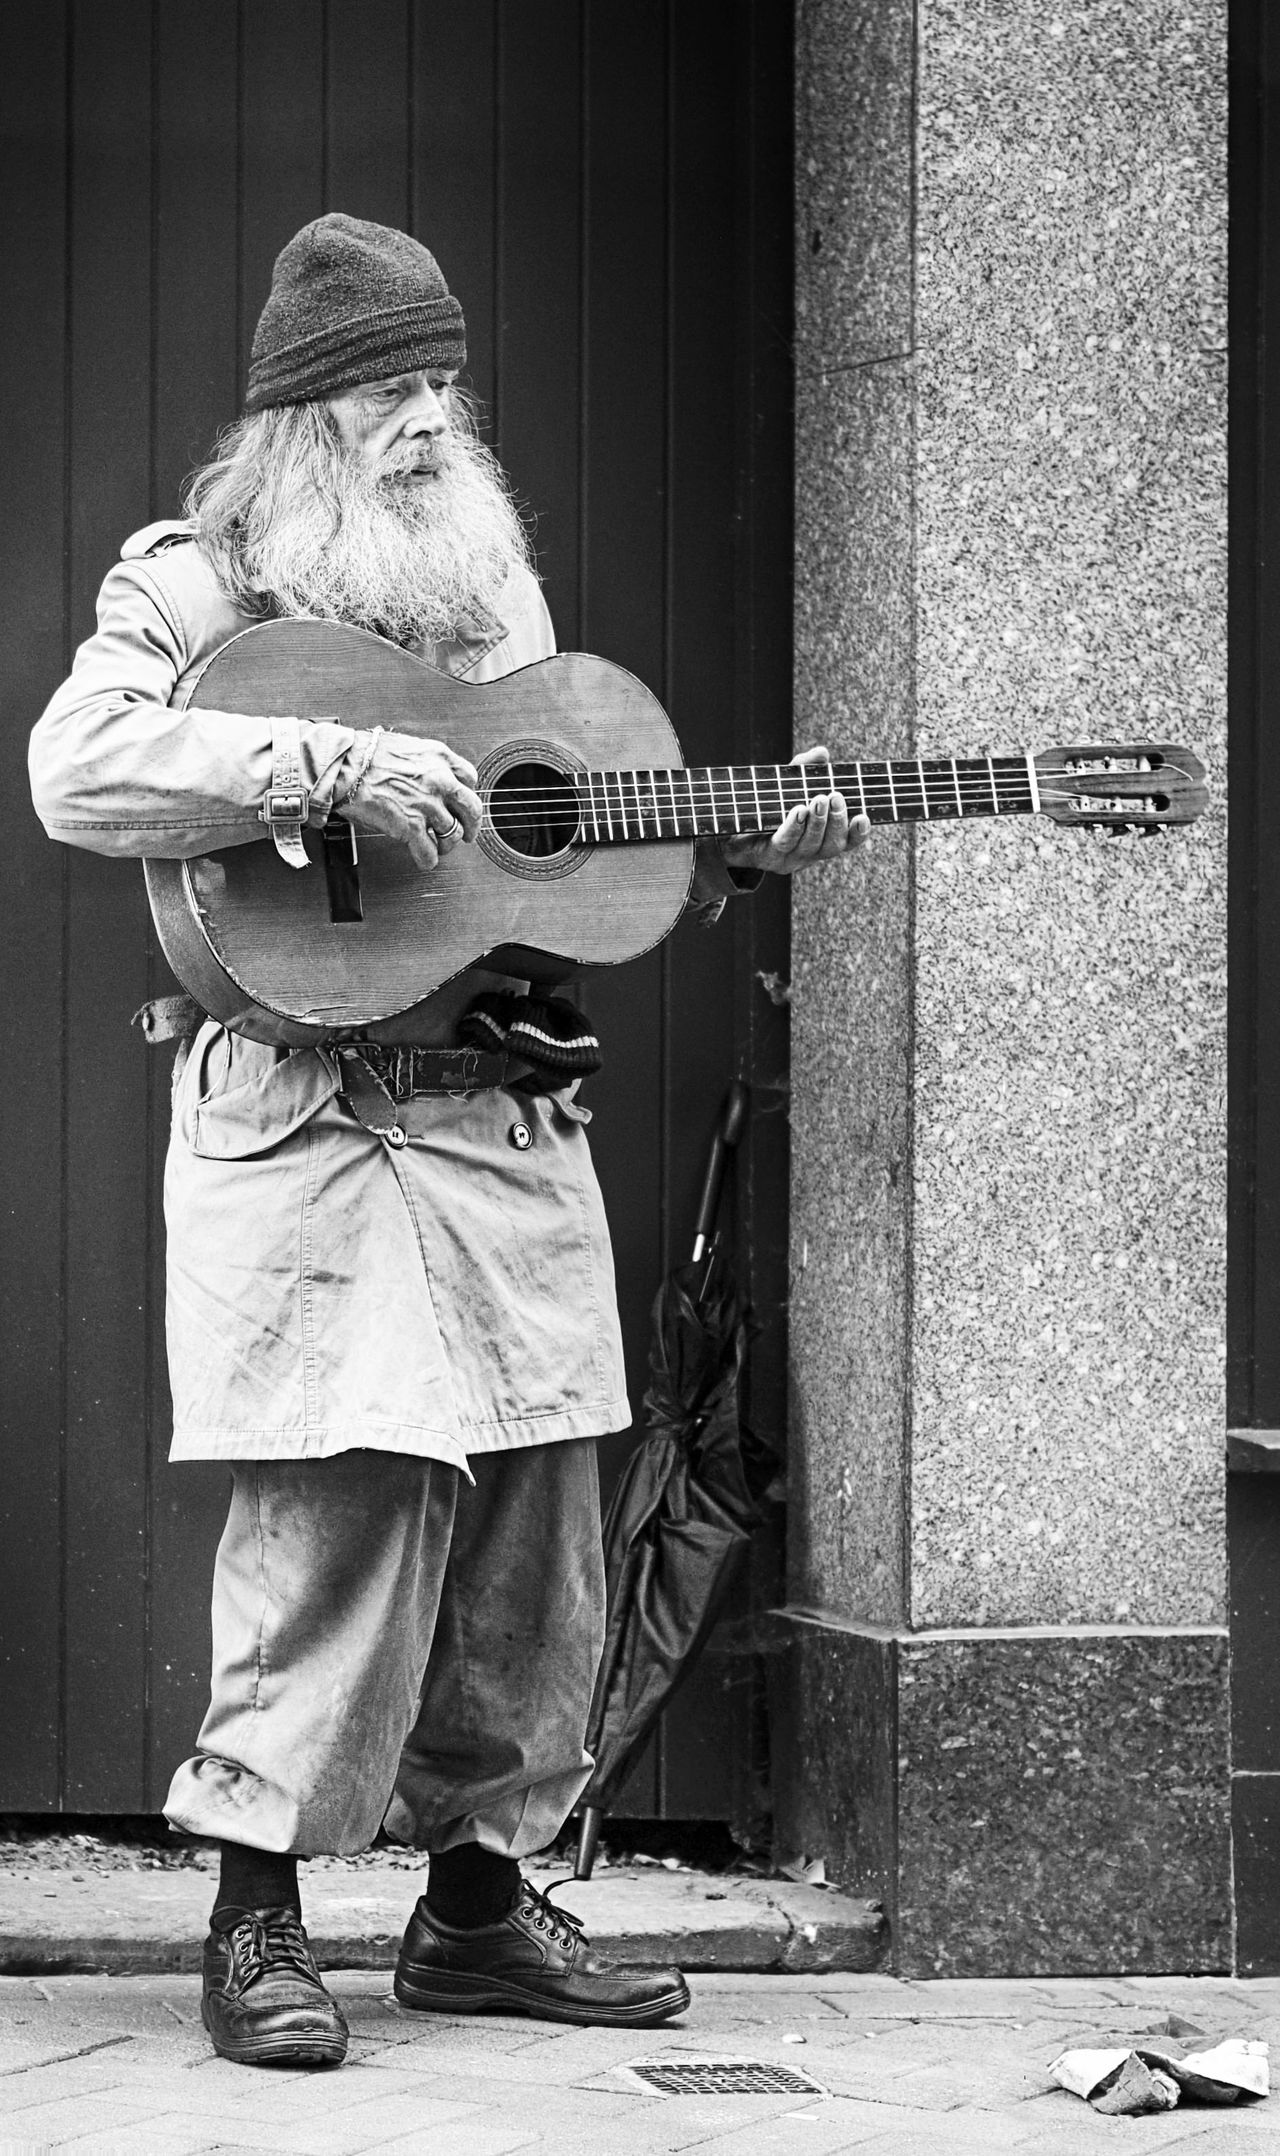 Beard Busker Busking Guitar Hat Musician Outdoors Player Poverty Rags Shop Doorway Street Photography Tatters